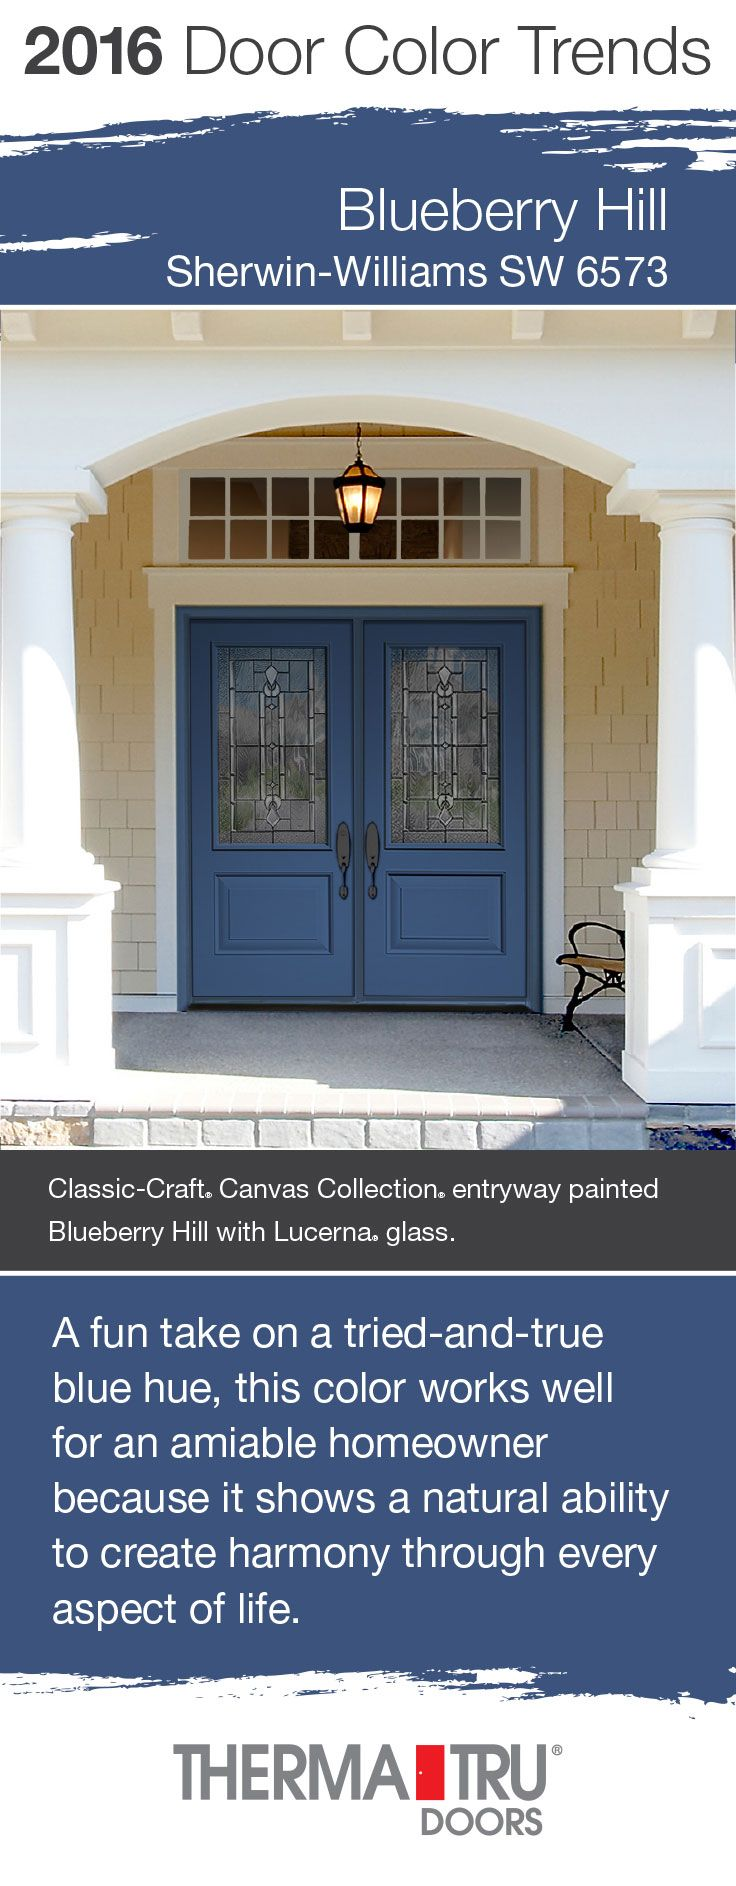 Blueberry Hill By Sherwin Williams One Of The Front Door Color Trends For 2016